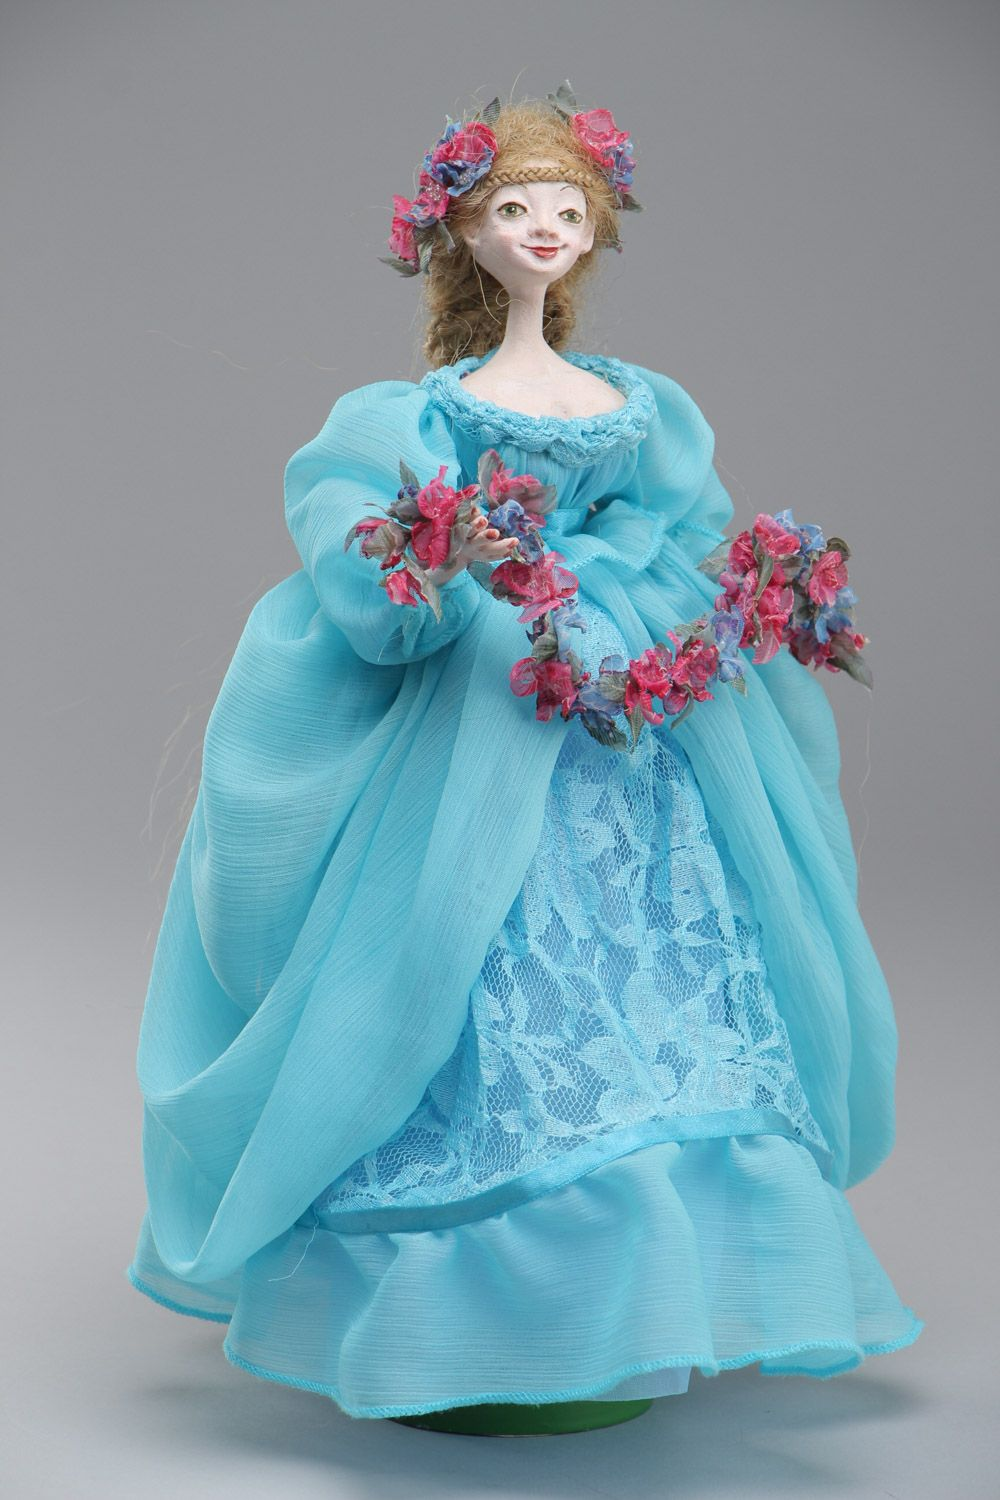 Handmade collectible paperclay interior doll in blue dress photo 2